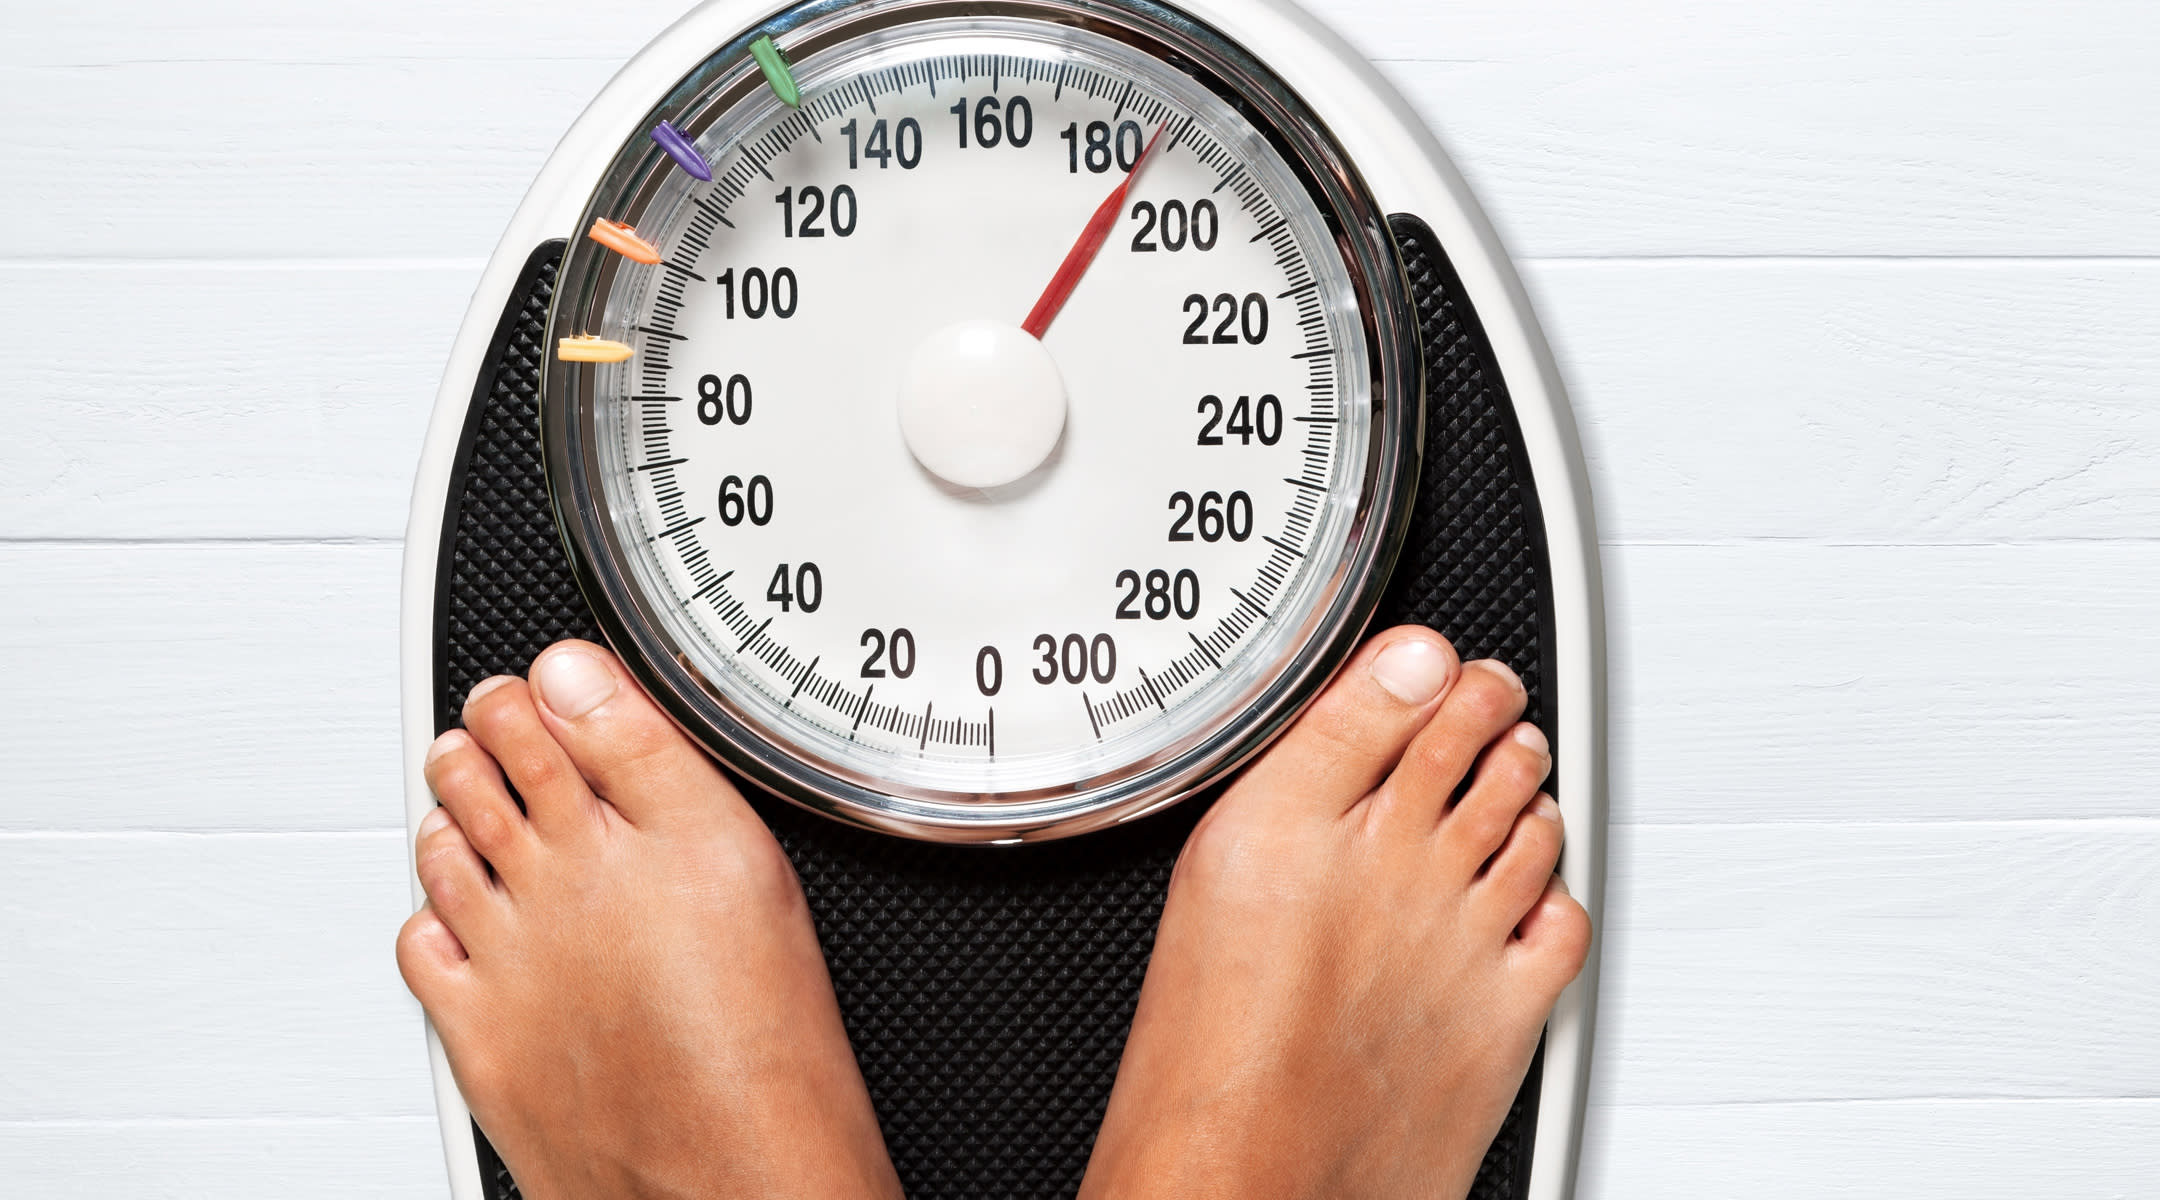 weight loss feet scale